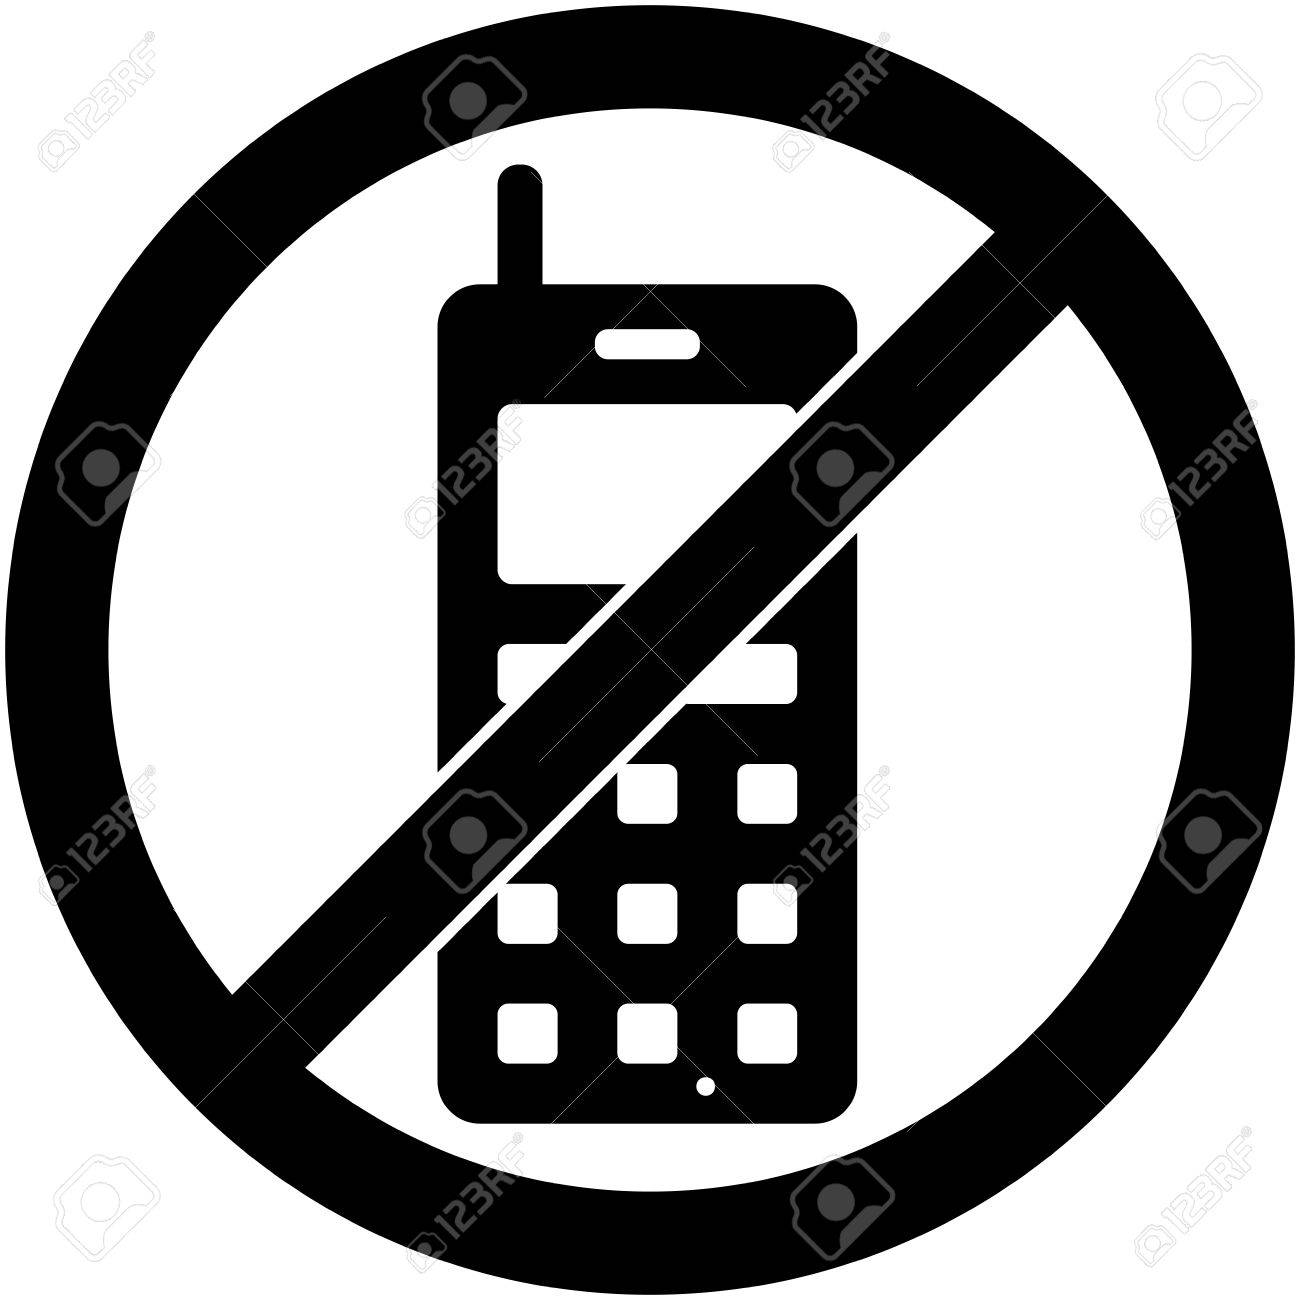 No phone, telephone, cellphone and smartphone prohibited symbol..